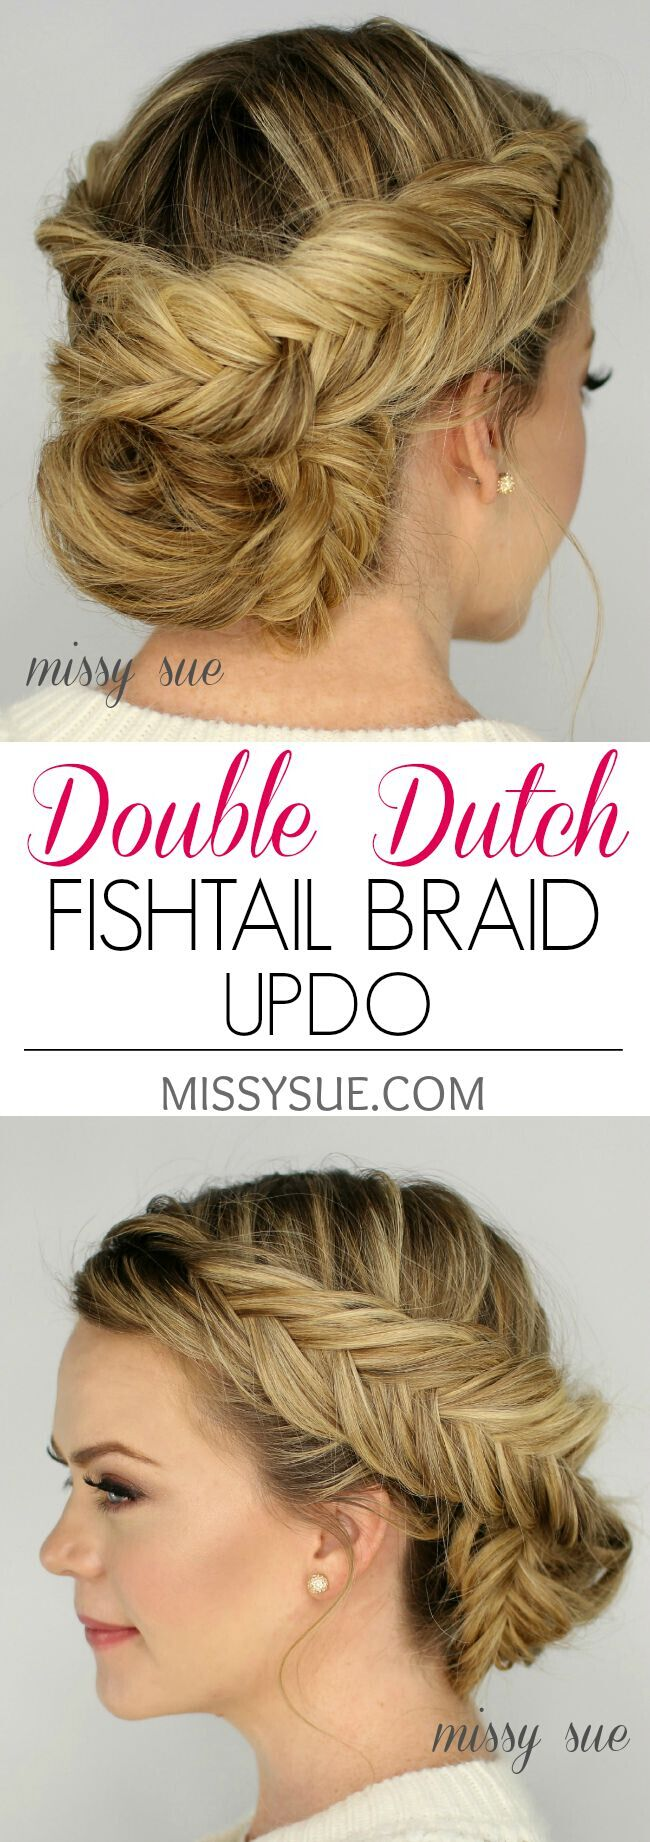 Double Dutch Fishtail Braid Updo Hairstyle Tutorial